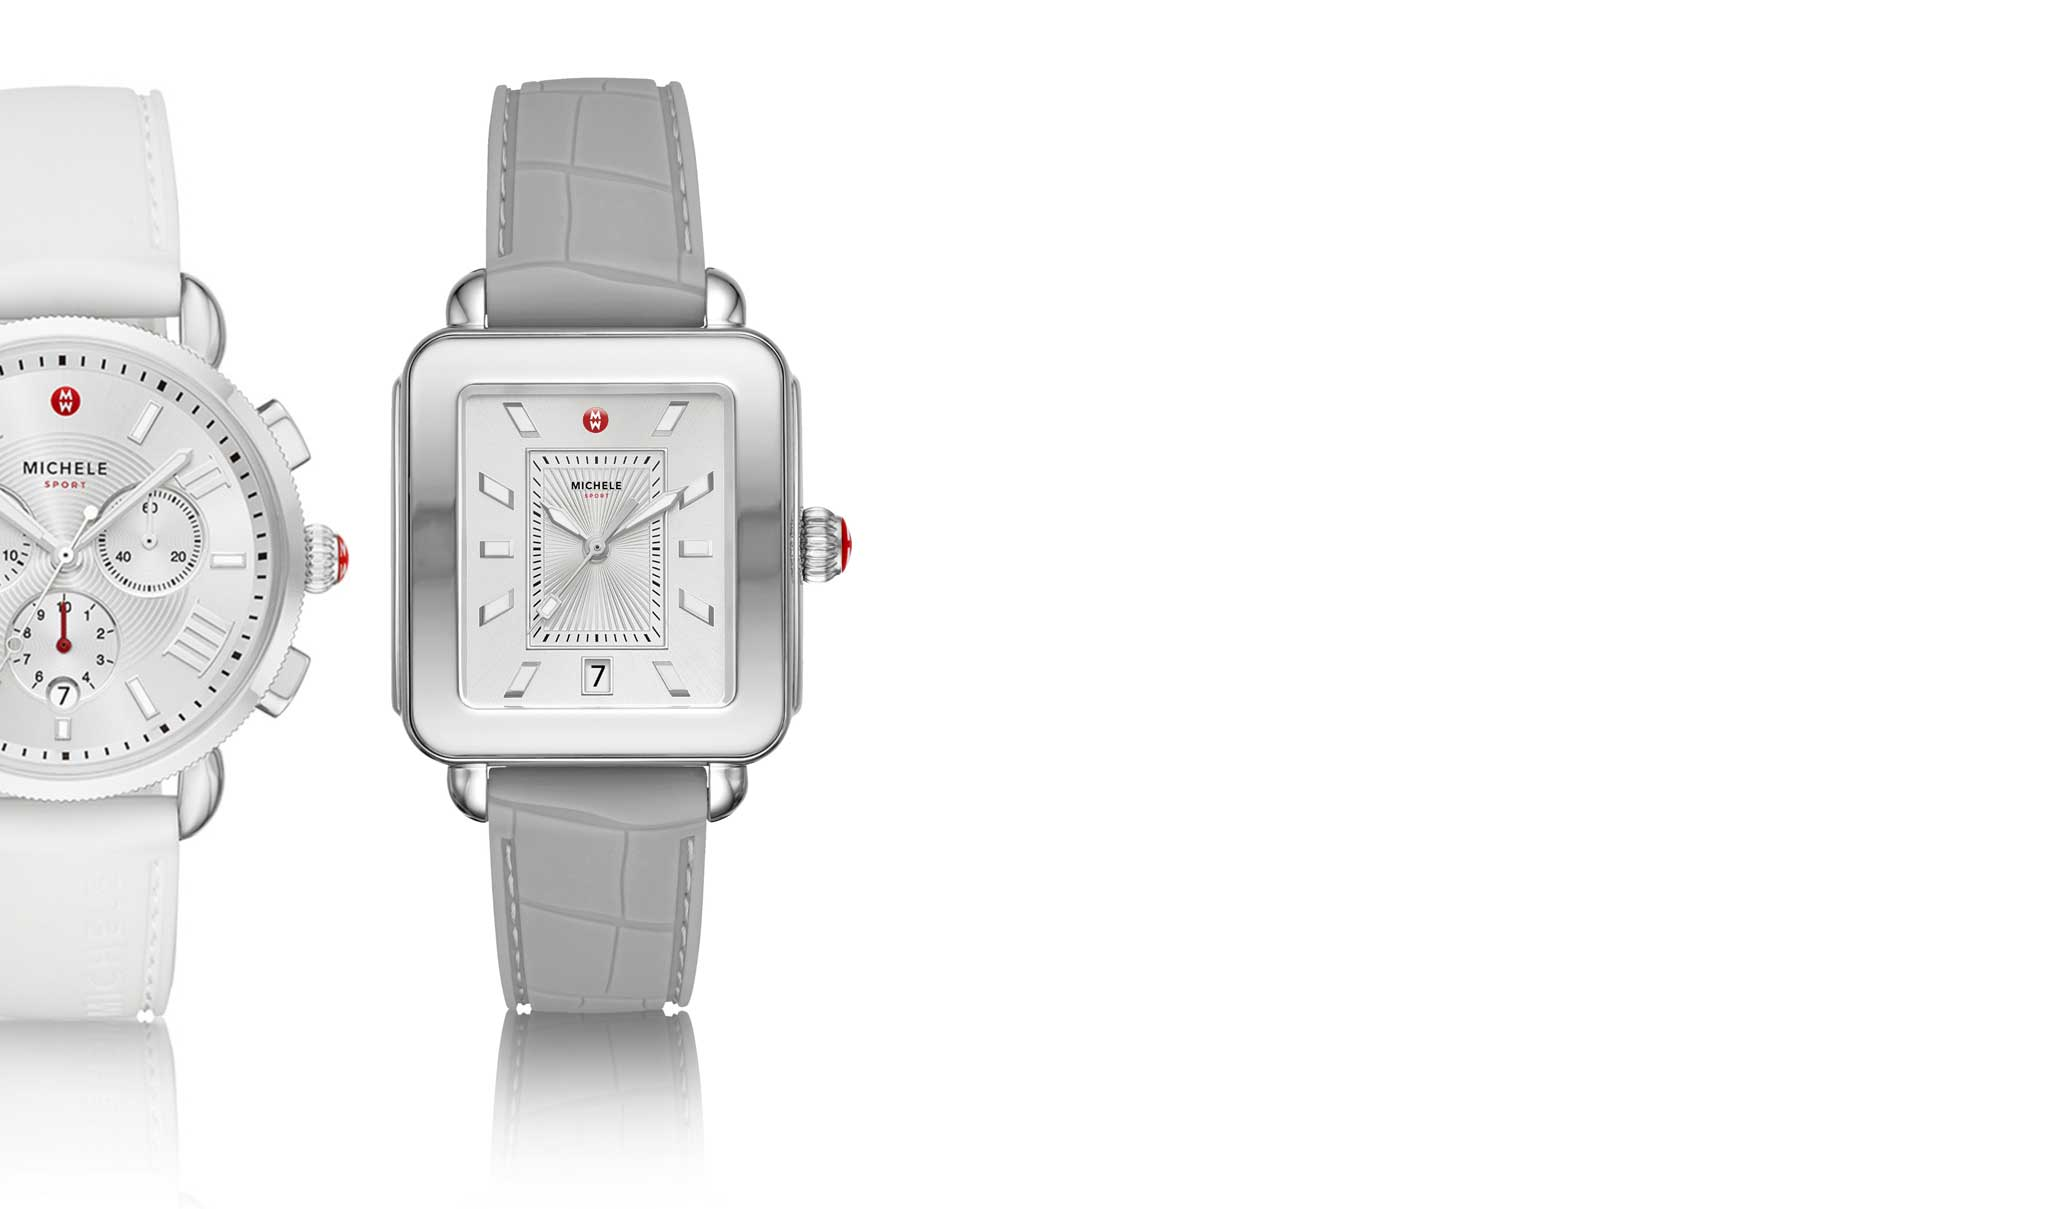 Iconic Deco watchin stainless featuring mother-of-pearl dial, diamond-covered bezel and signature seven-link bracelet.